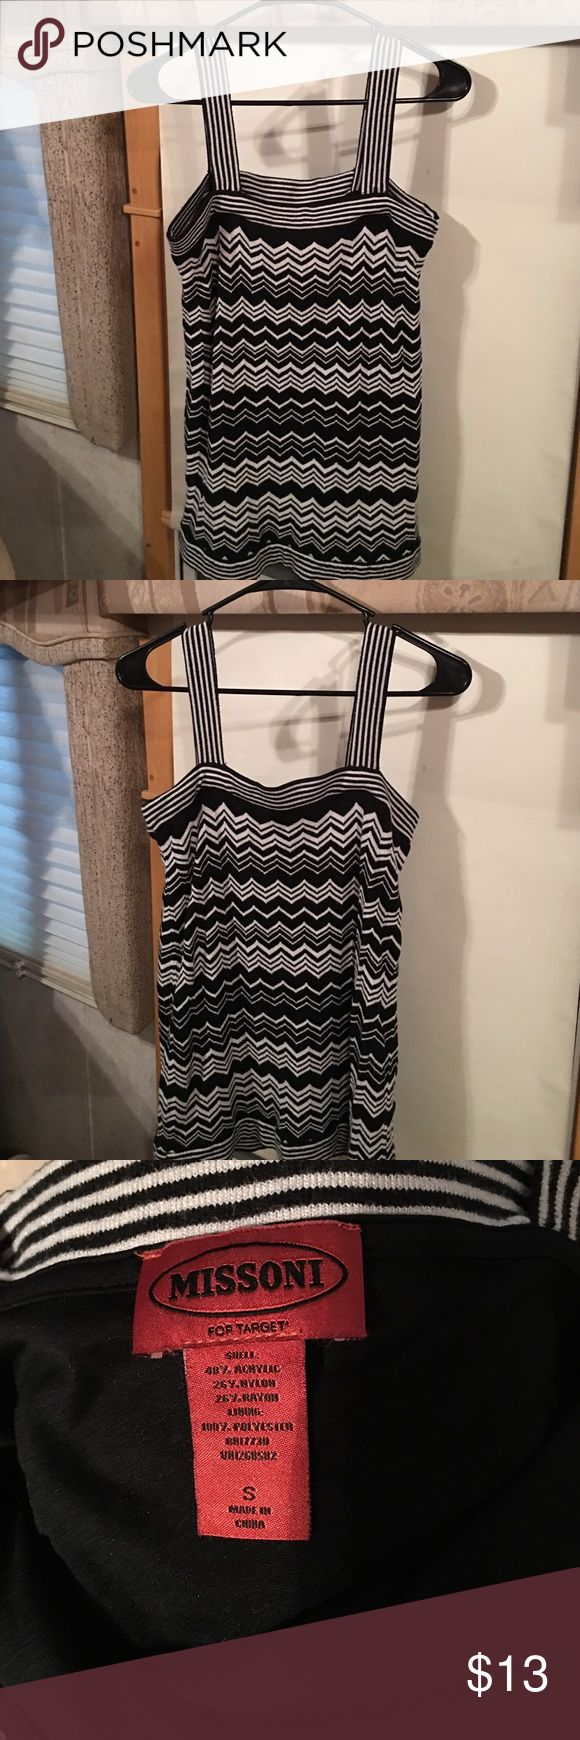 Missoni - For Target 🎯 Zig Zag Chevron top - SM Missoni - For Target 🎯 Zig Zag Chevron top - SM Excellent Condition - No Stains - No Flaws - Fully Lined.  Length - with straps is 27 inches Missoni Tops